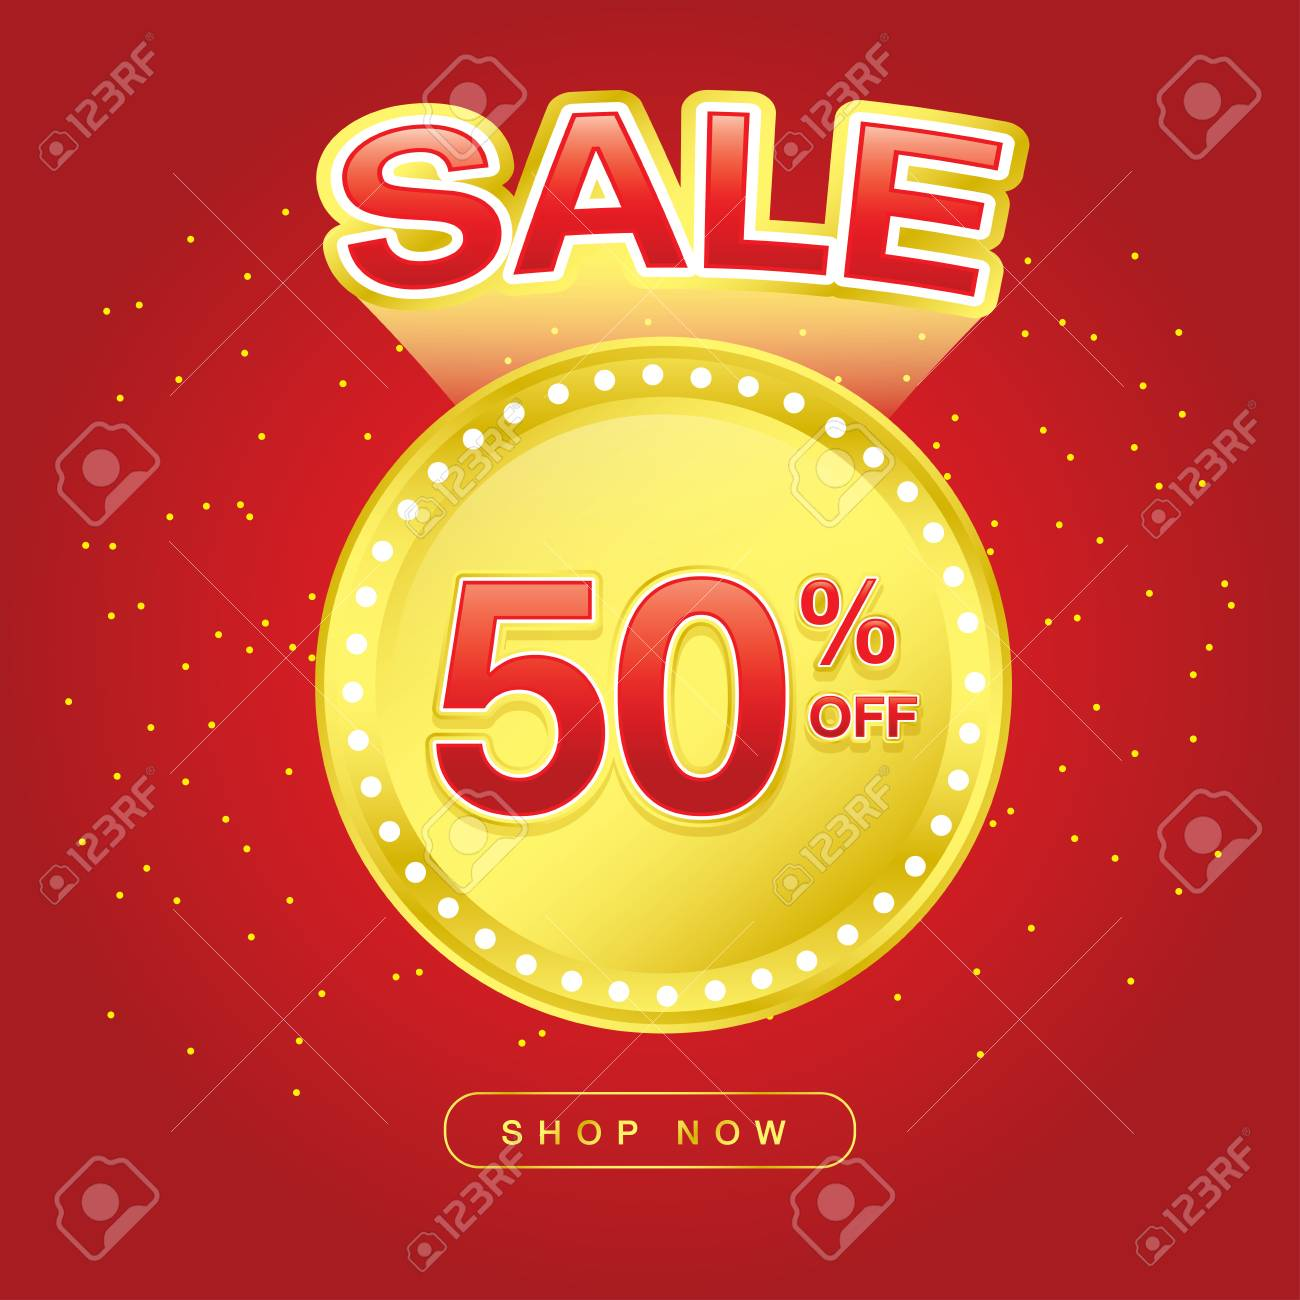 Sale Discount 50% Light Frame Shop Now Online, Discount Offer ...